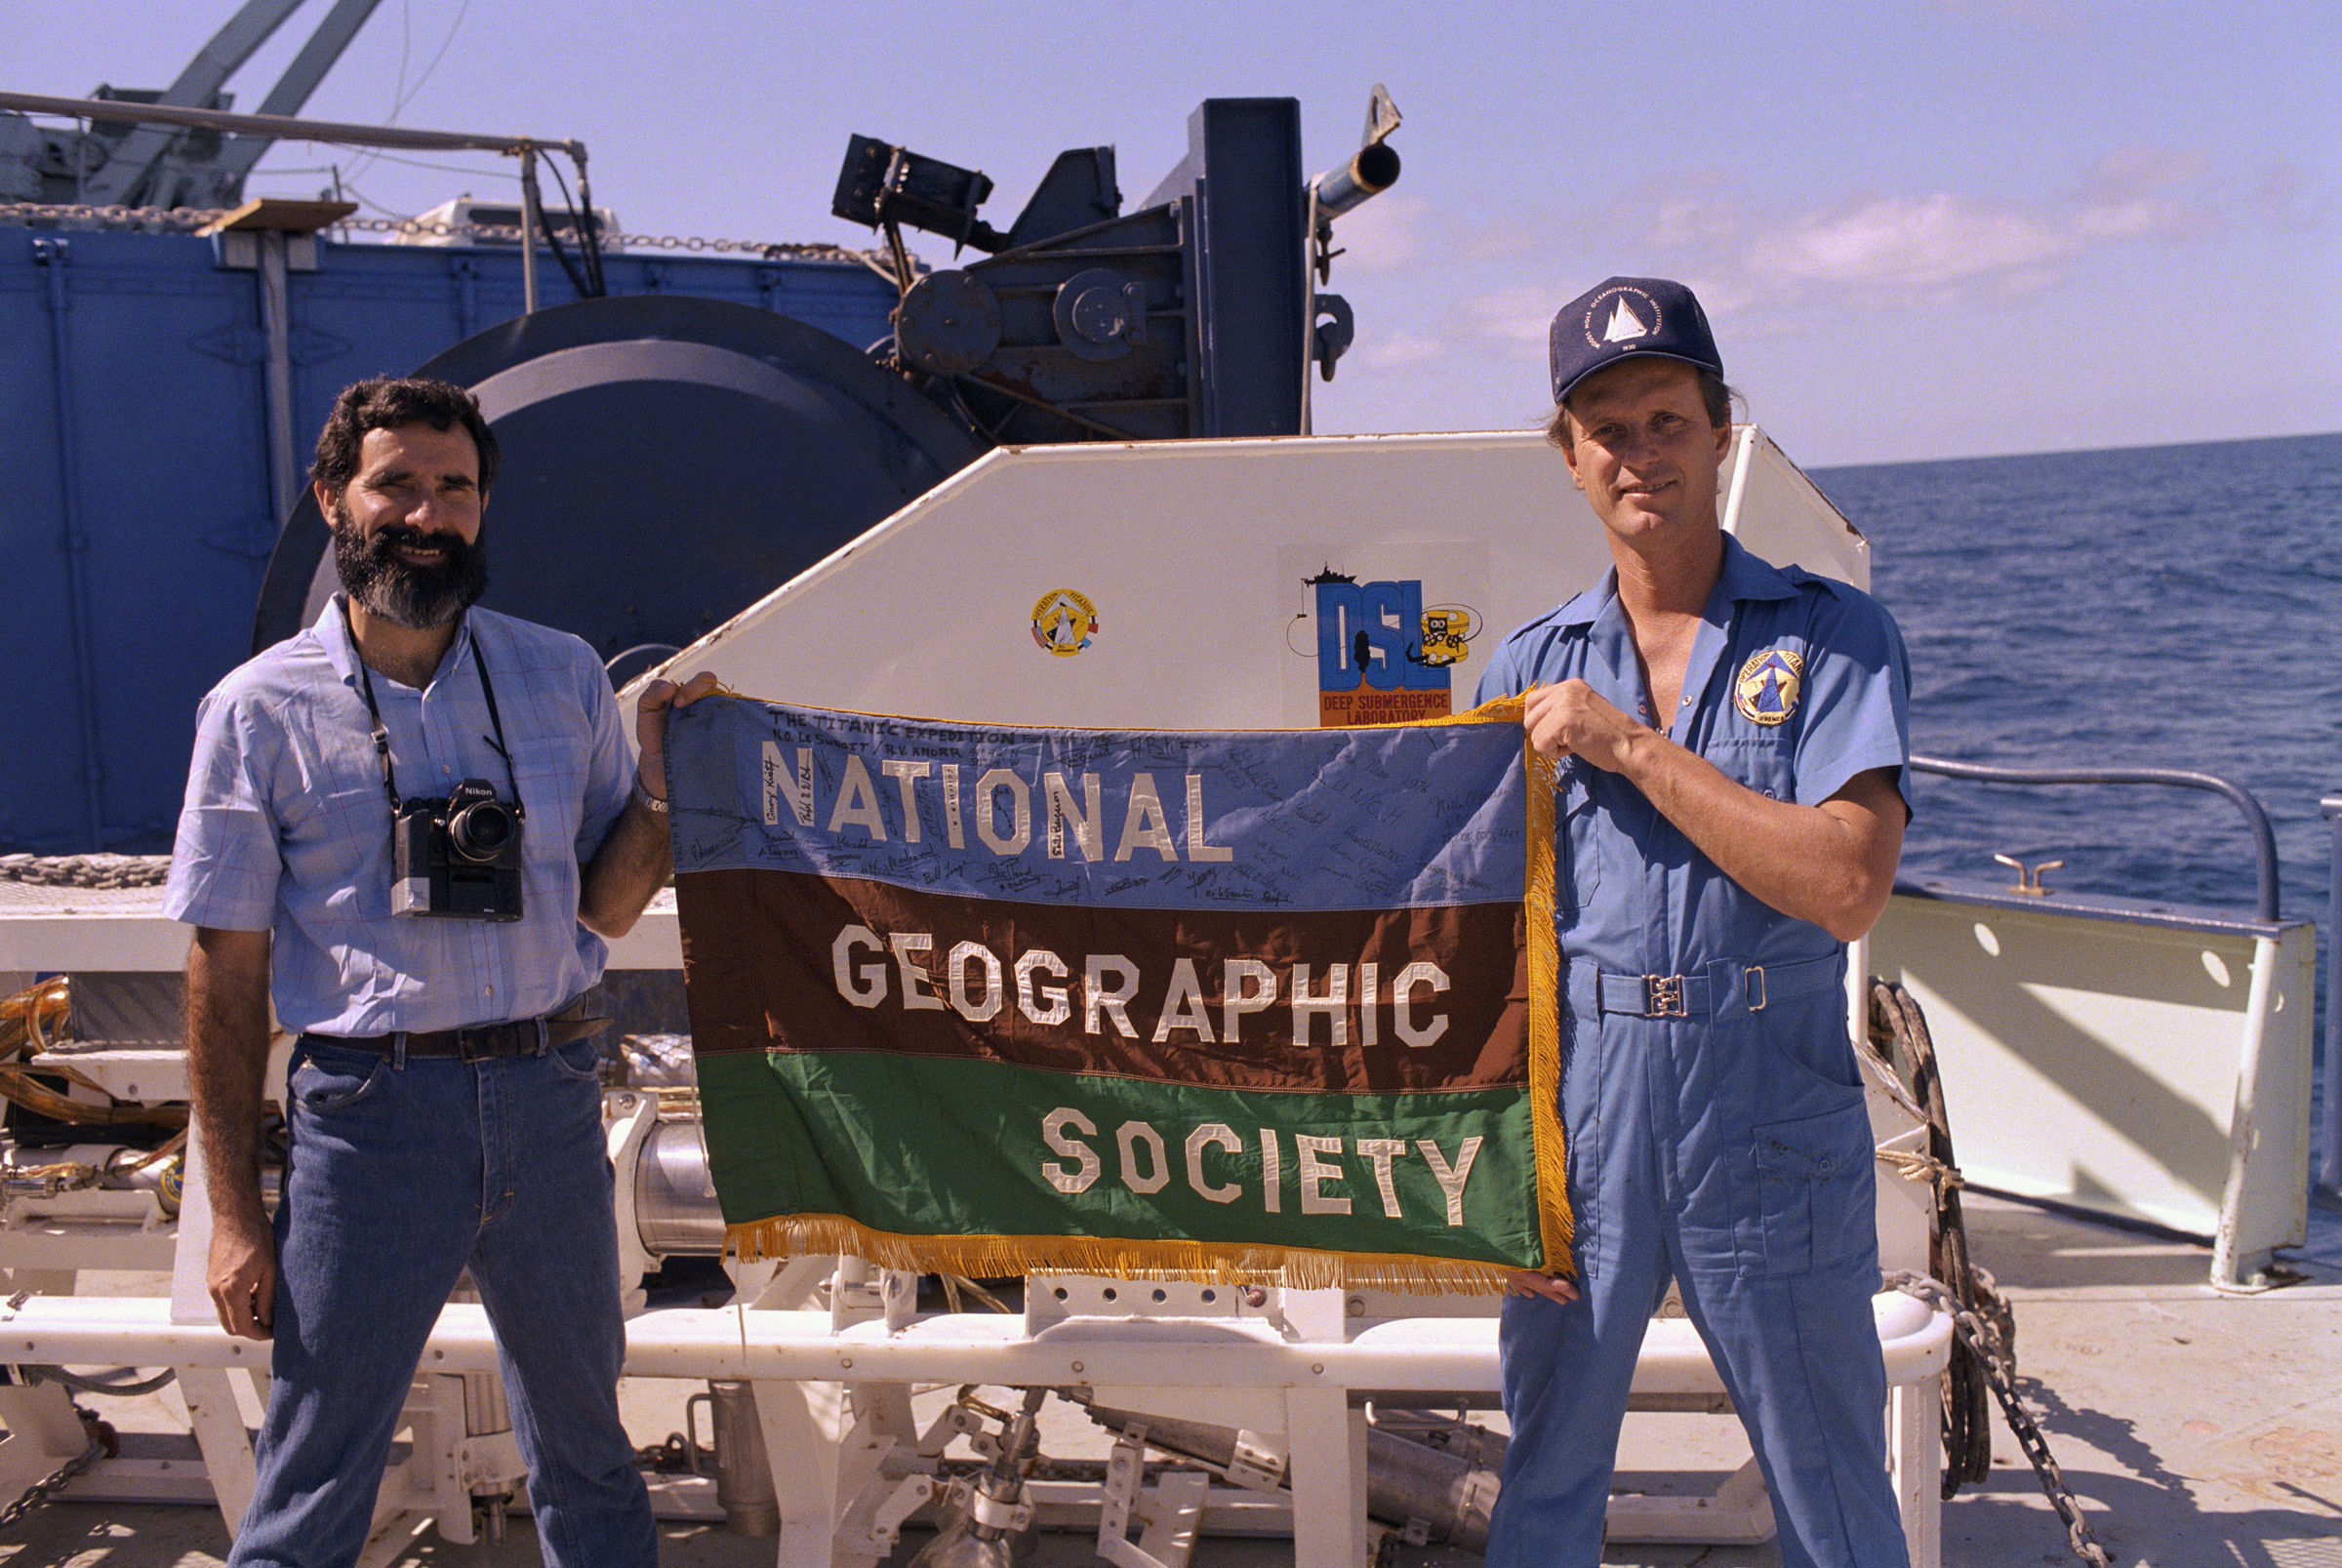 Robert Ballard (right) with National Geographic flag